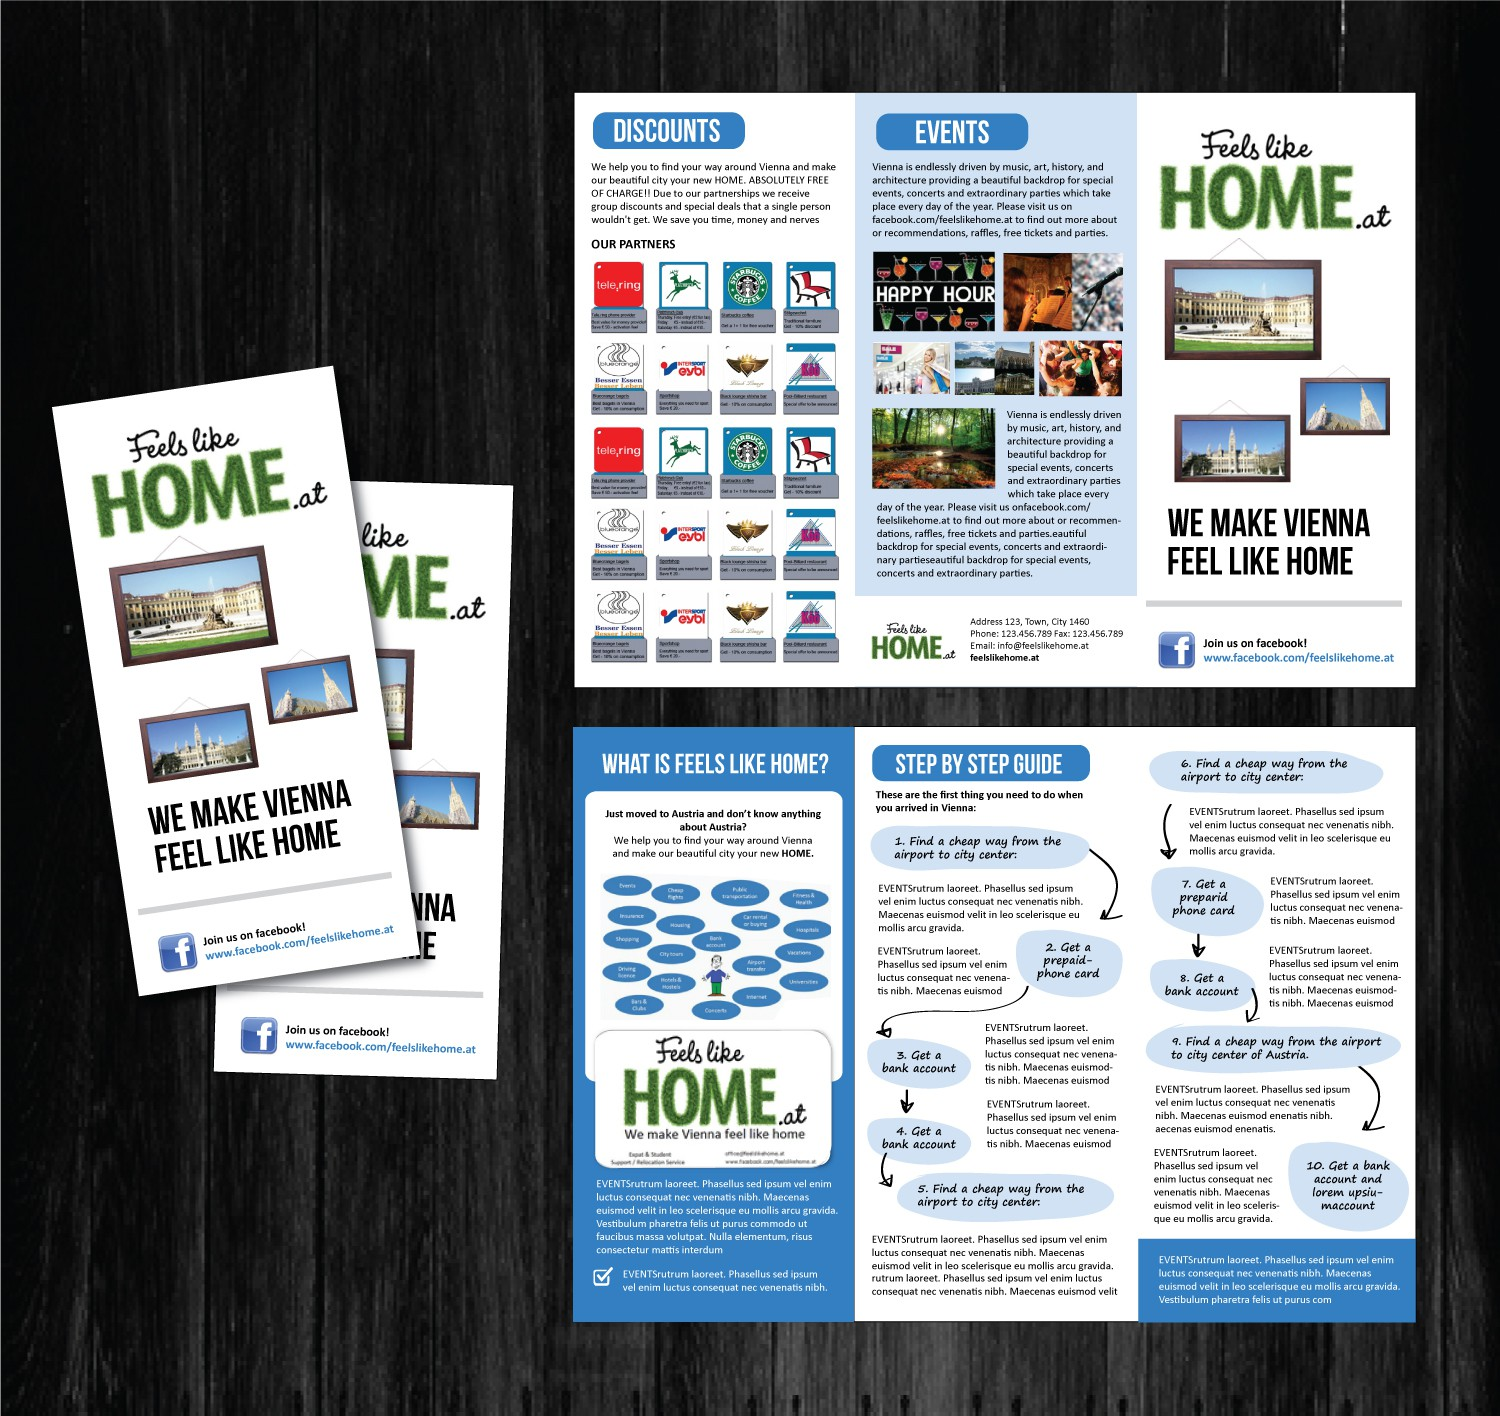 New print or packaging design wanted for Feelslikehome